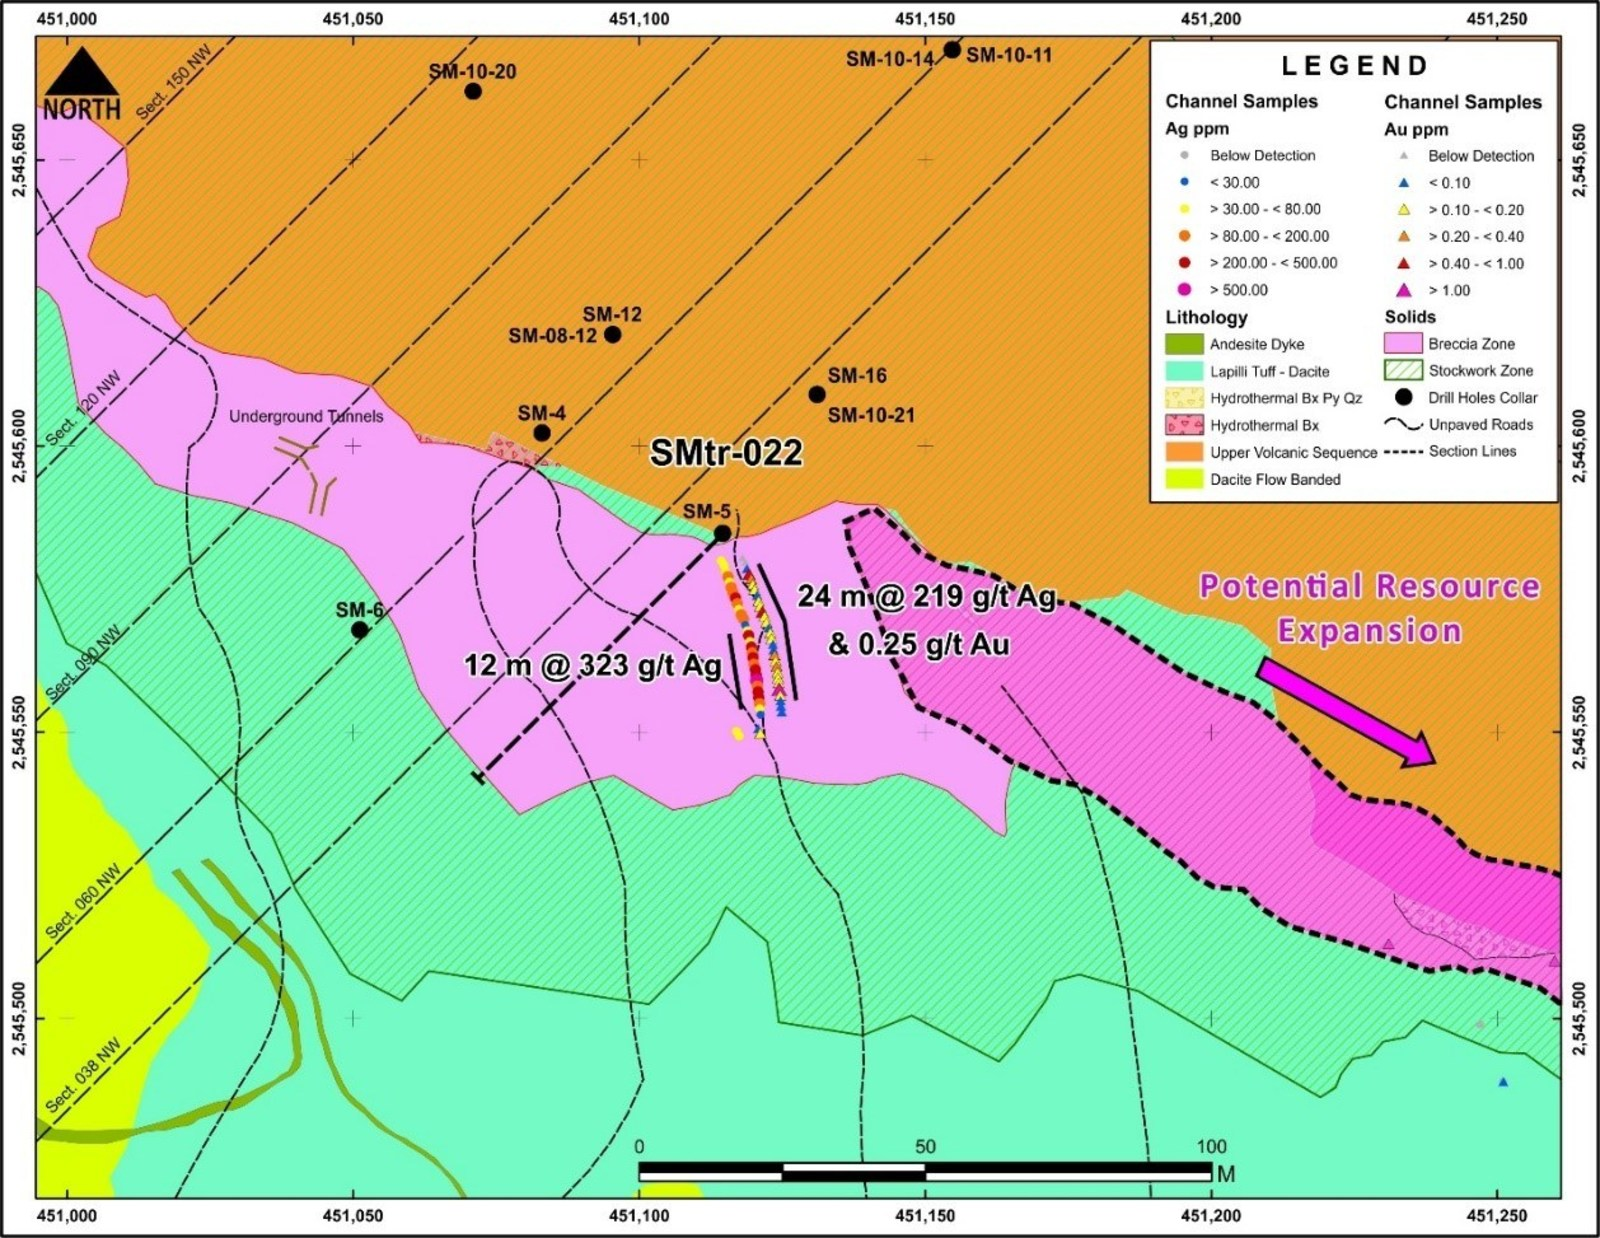 Figure 4 Location of SMtr-022 Trench – SE Extension of San Marcial Resource Area